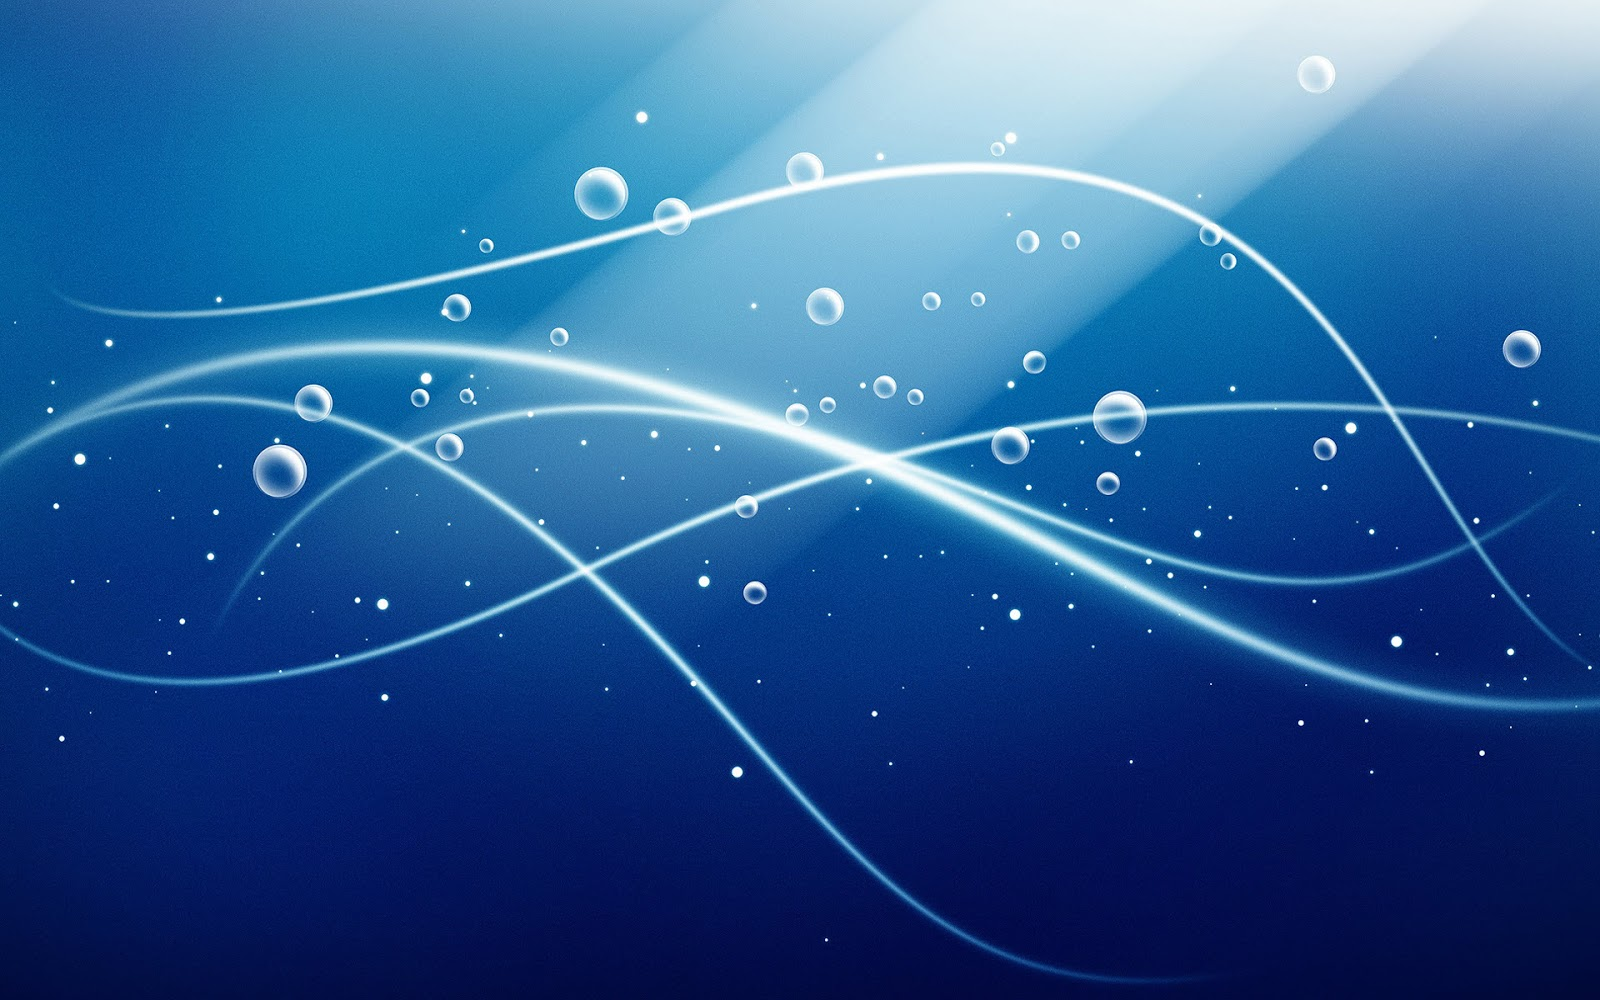 Free download Cool PowerPoint Backgrounds Cool backgrounds for